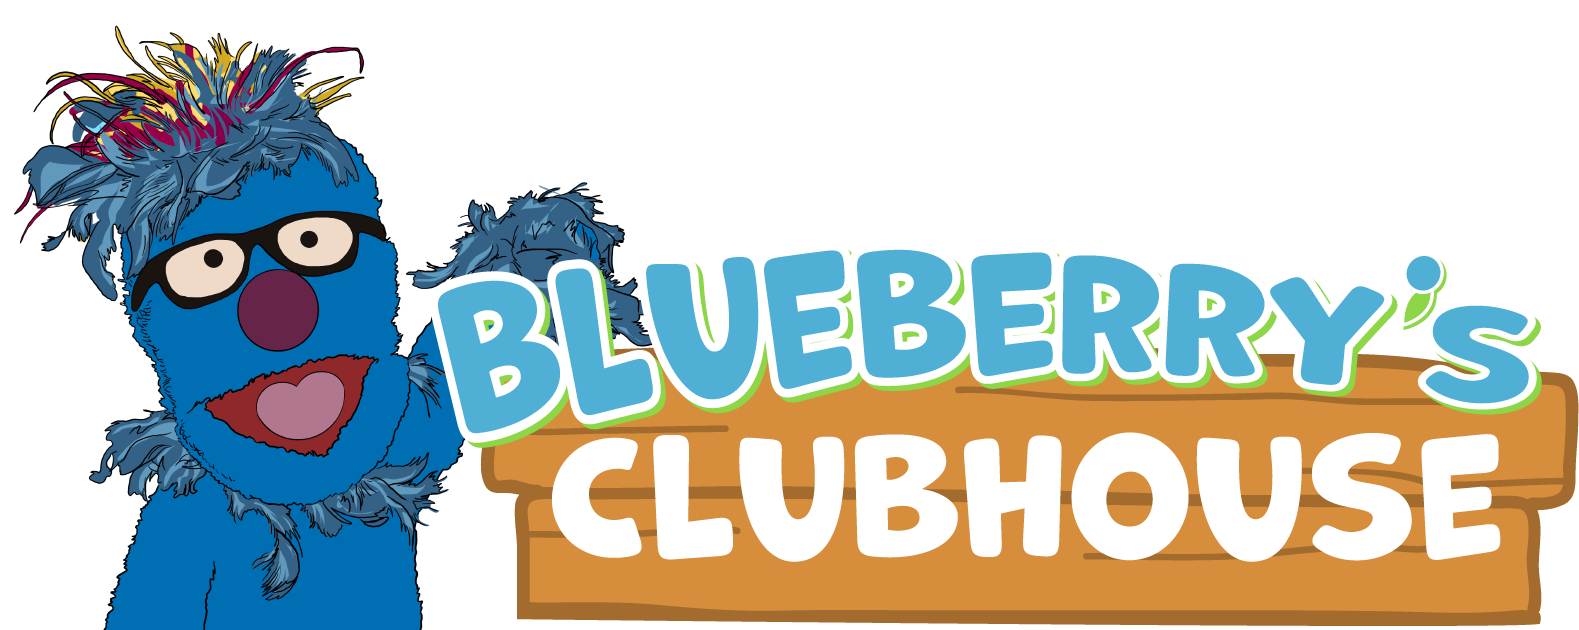 Blueberry's Clubhouse